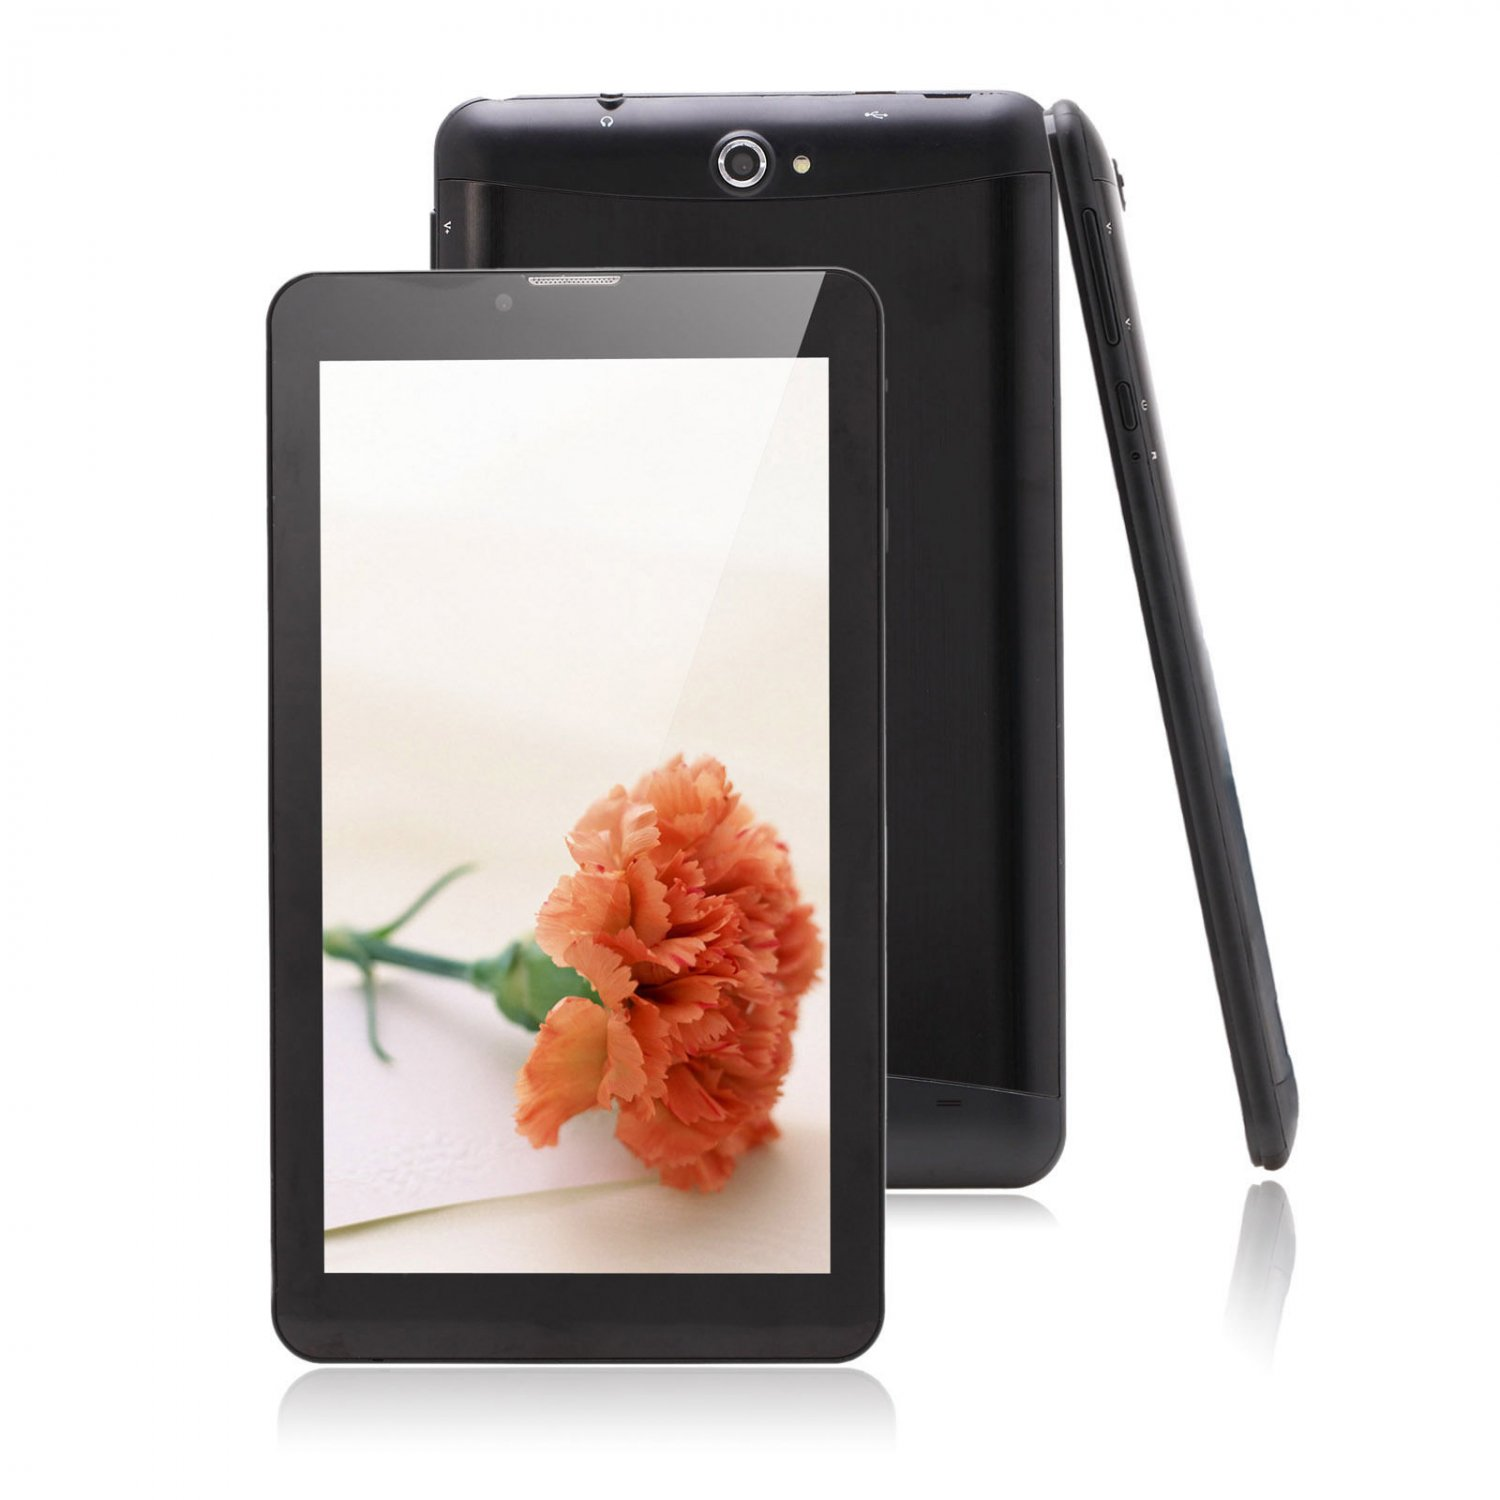 "iRulu 7"" WCDMA 3G Phablet Tablet PC Dual Core&Cam A7 4GB Android 4.2 Bluetooth"